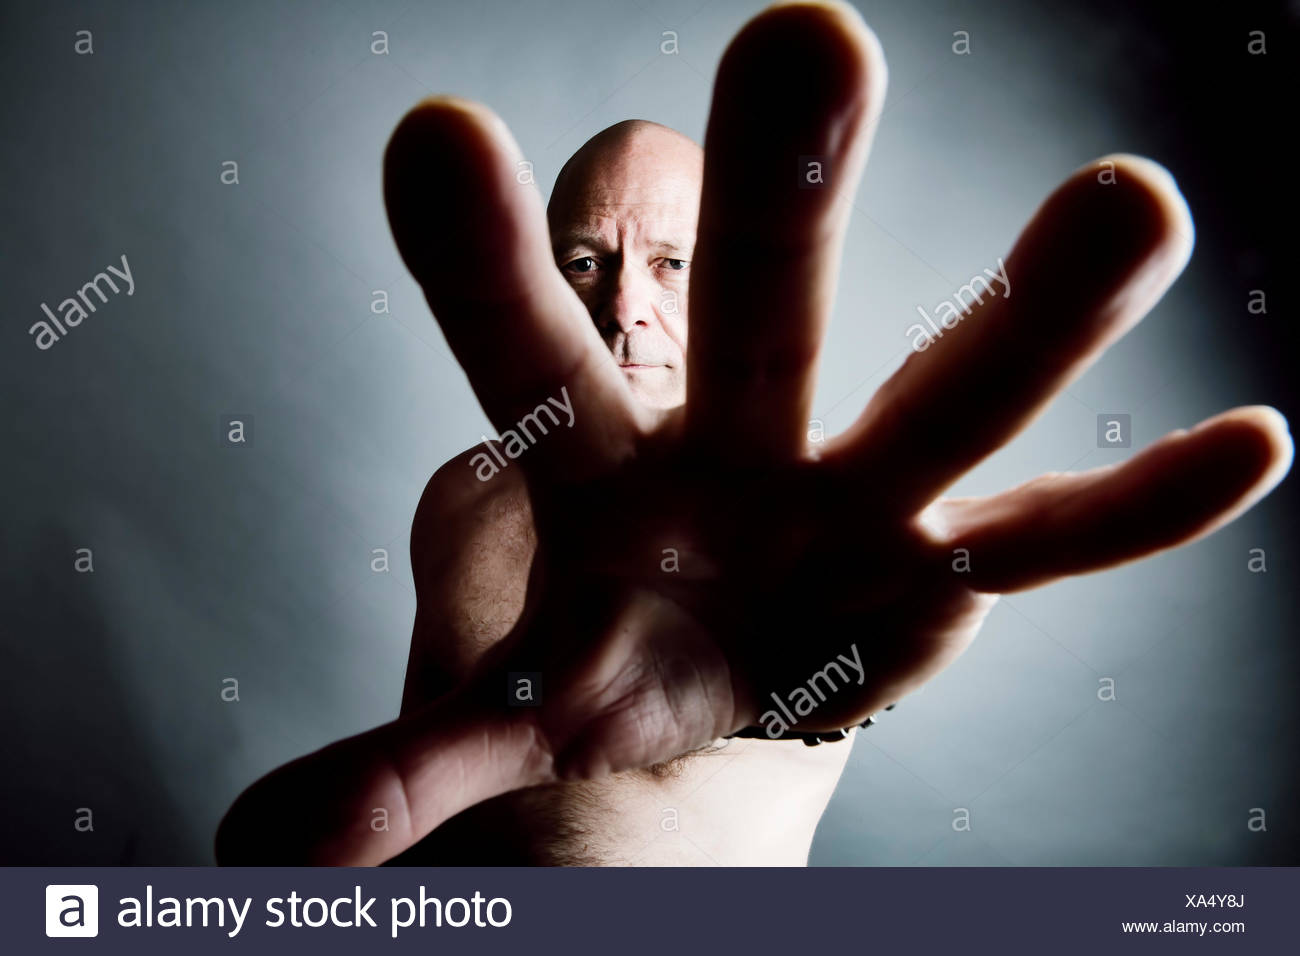 Man defending viewer with his hand - Stock Image